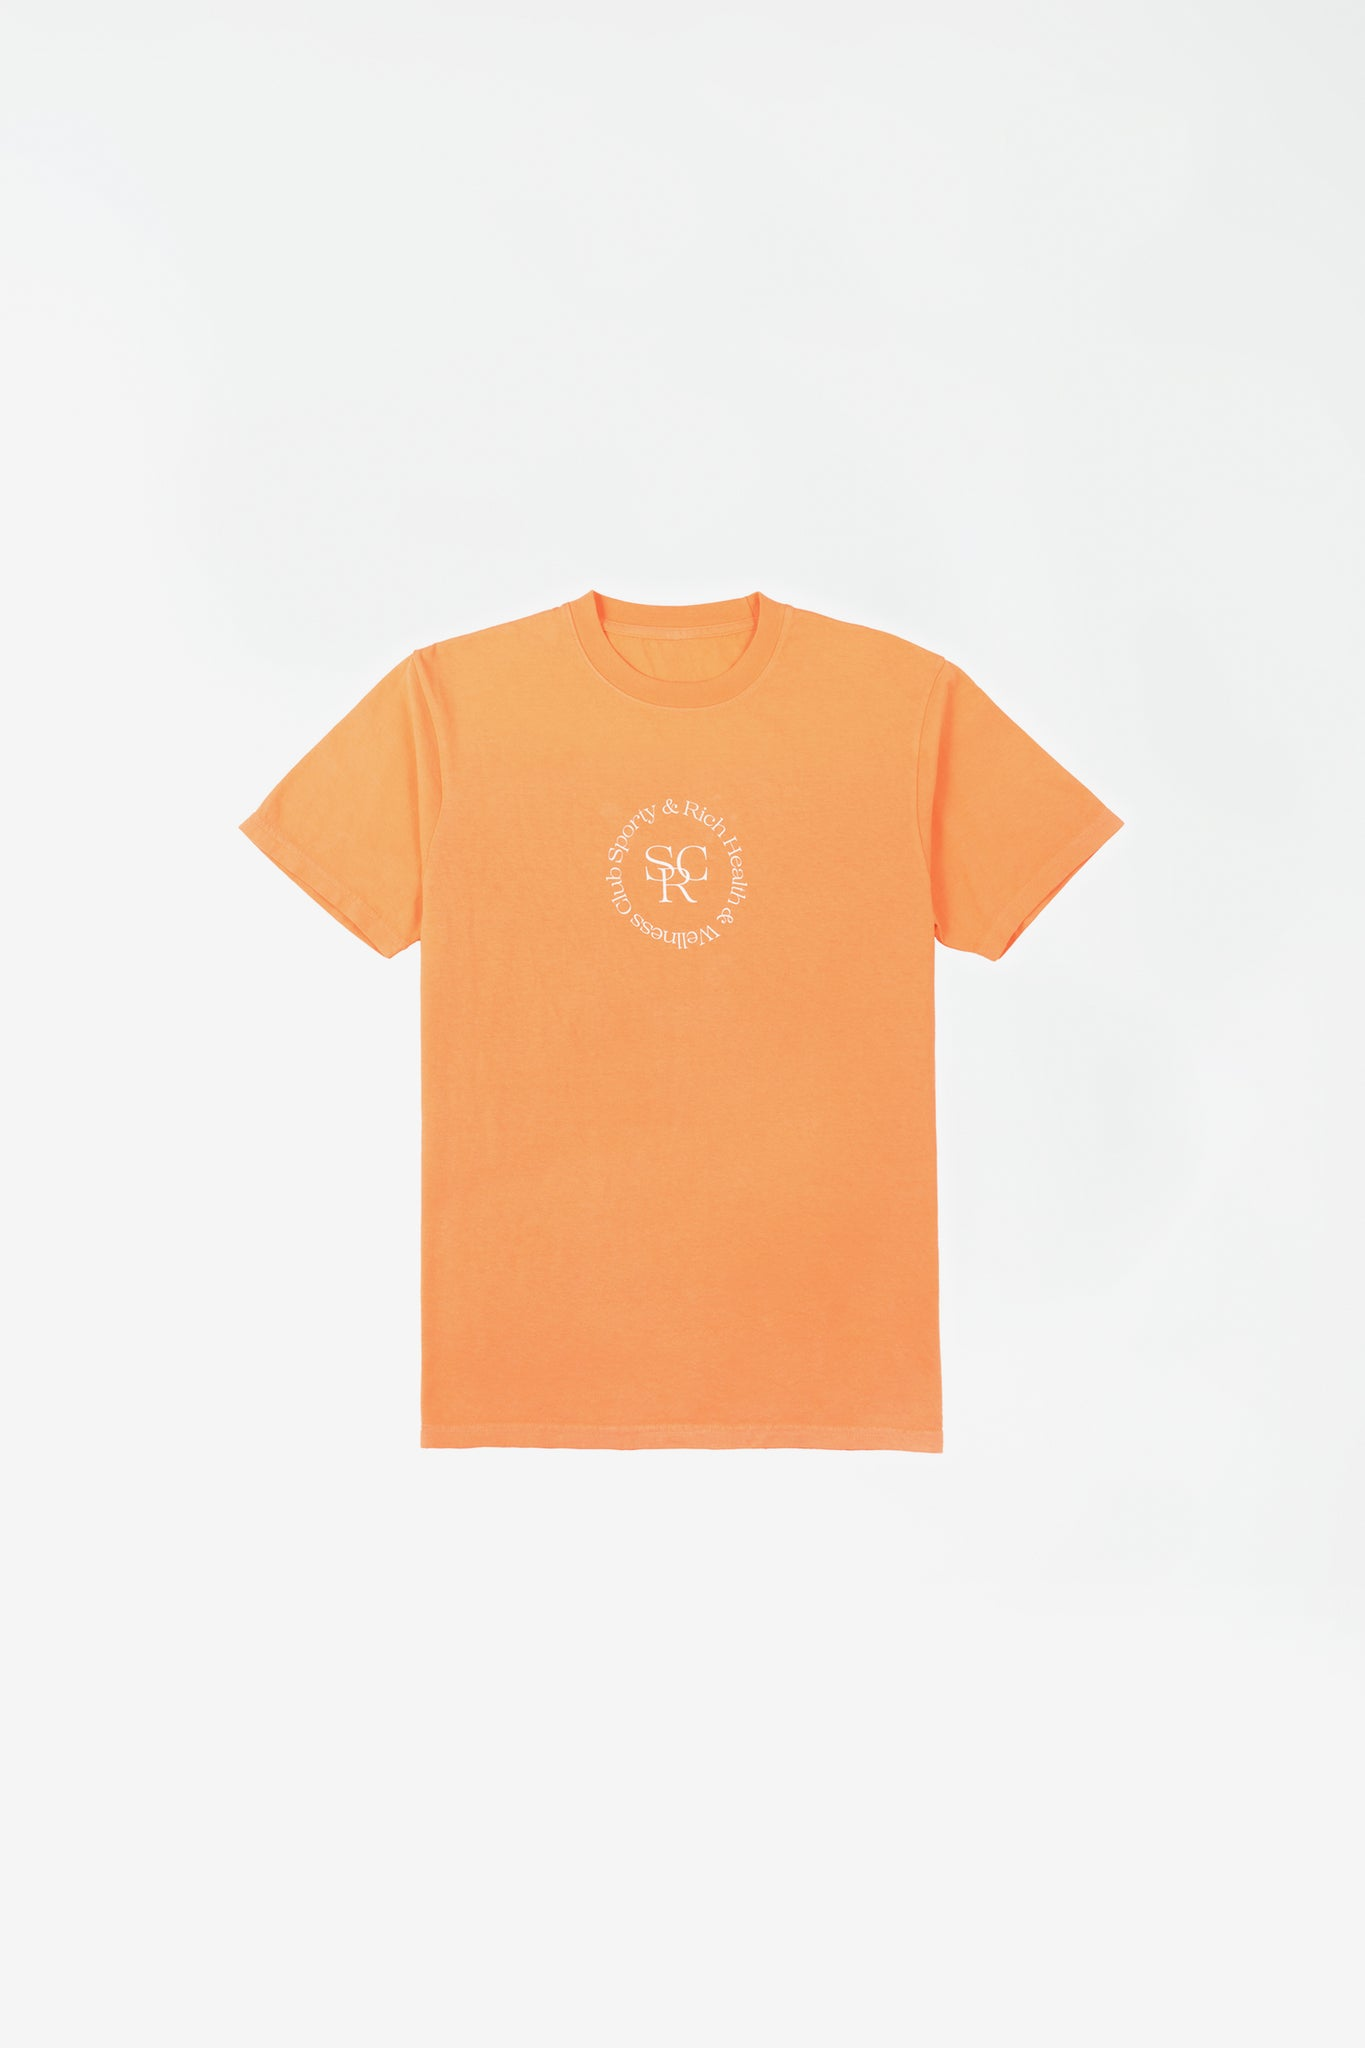 SRHWC t-shirt orange cream